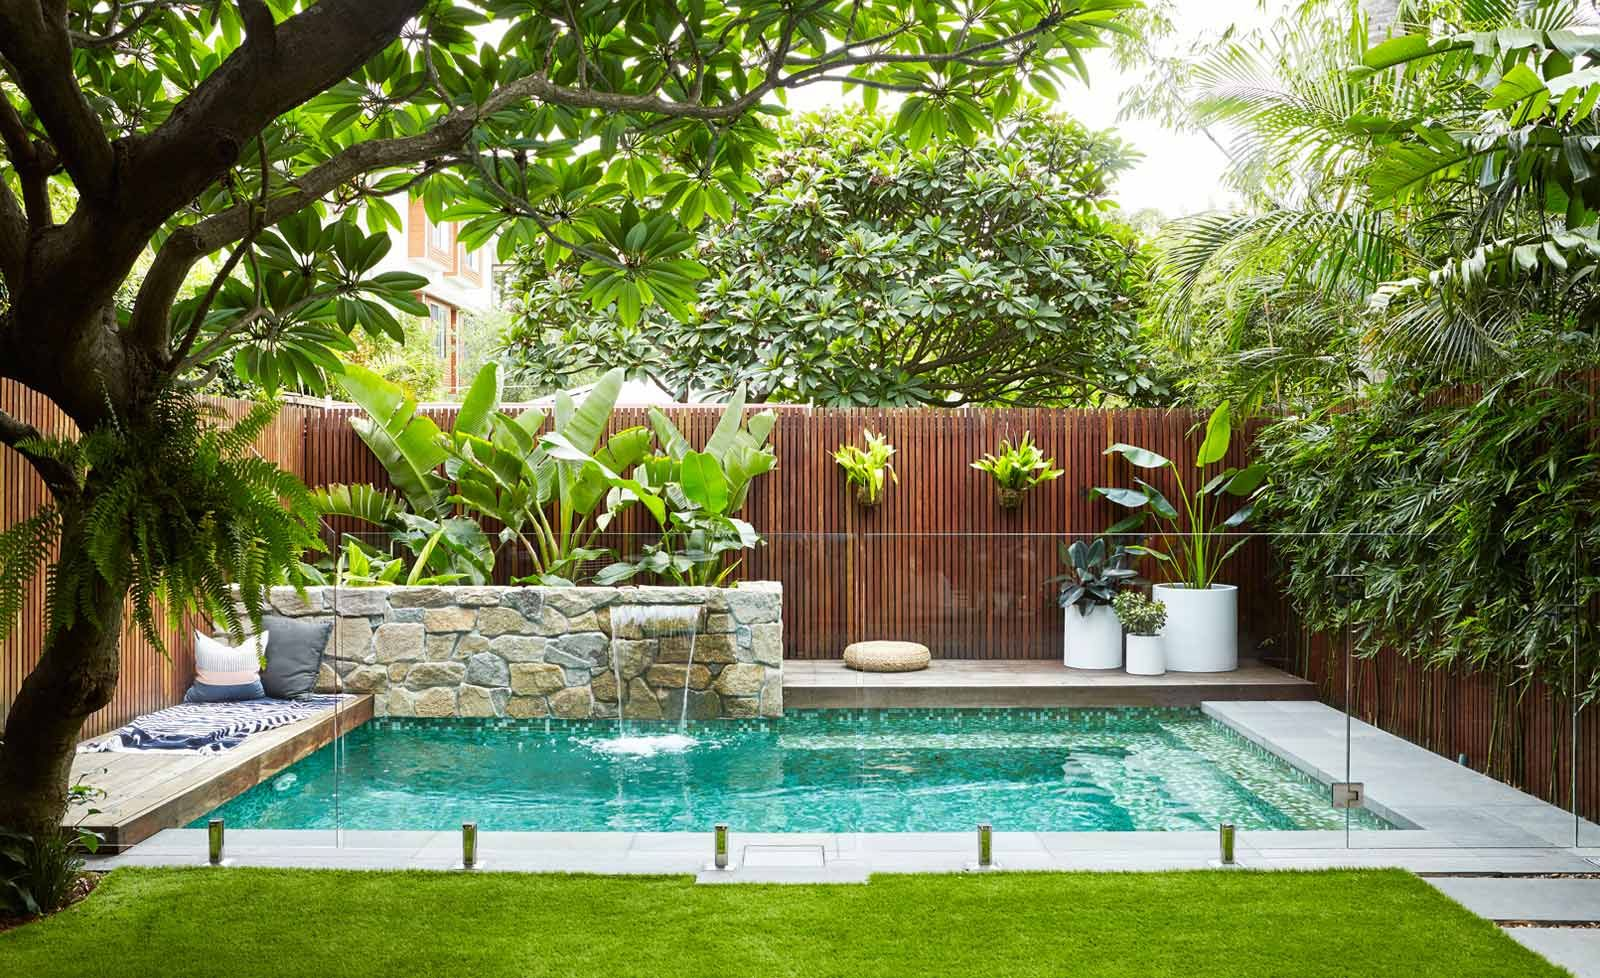 Image Result For Plunge Pool Landscaping Small Backyard Pools Small Pool Design Backyard